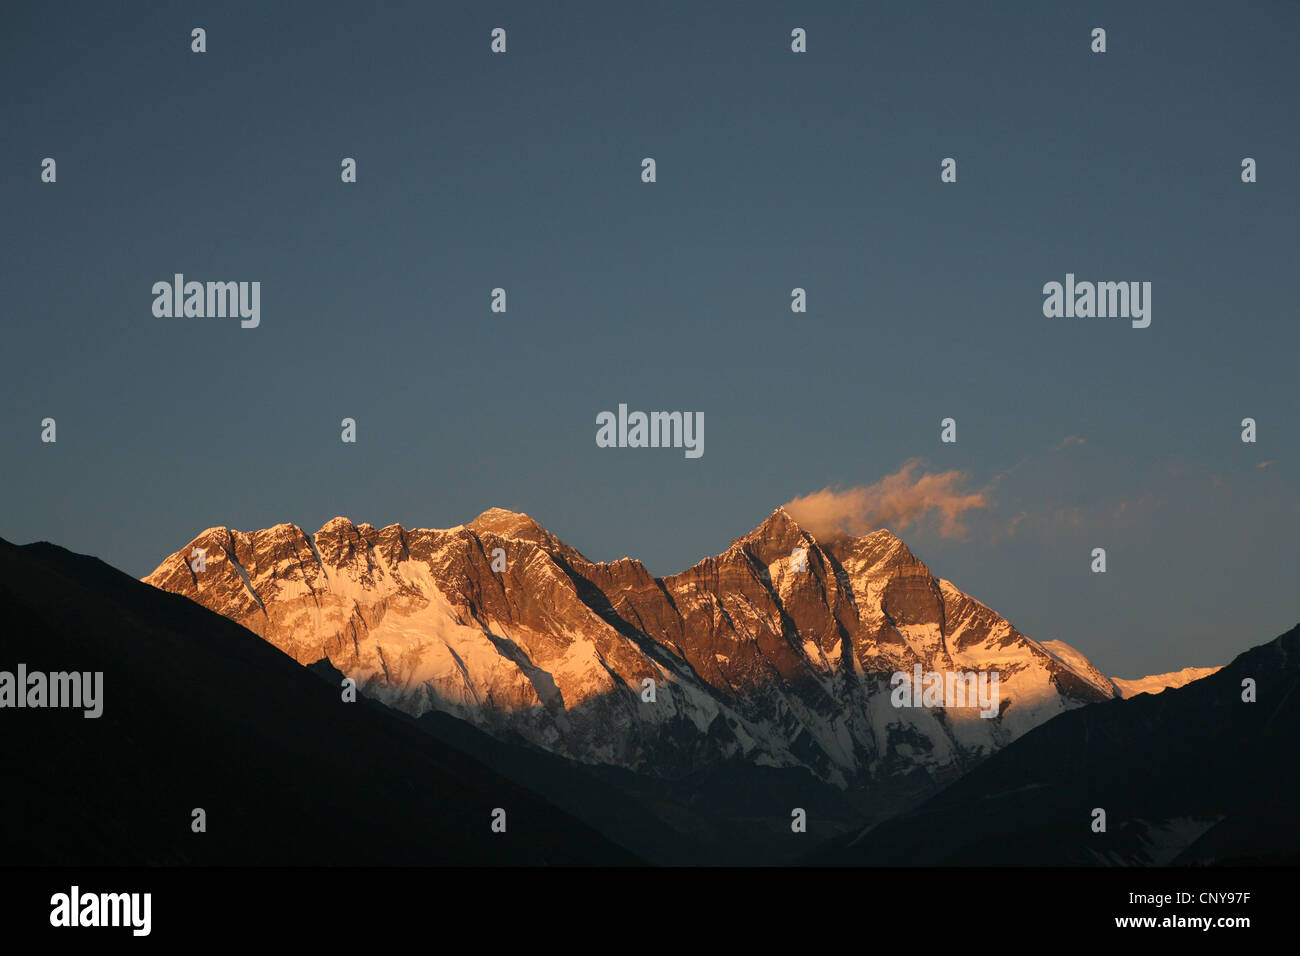 South face of Mount Lhotse (8,516 m) in Khumbu region in the Himalayas, Nepal. View from Tengboche Monastery. - Stock Image